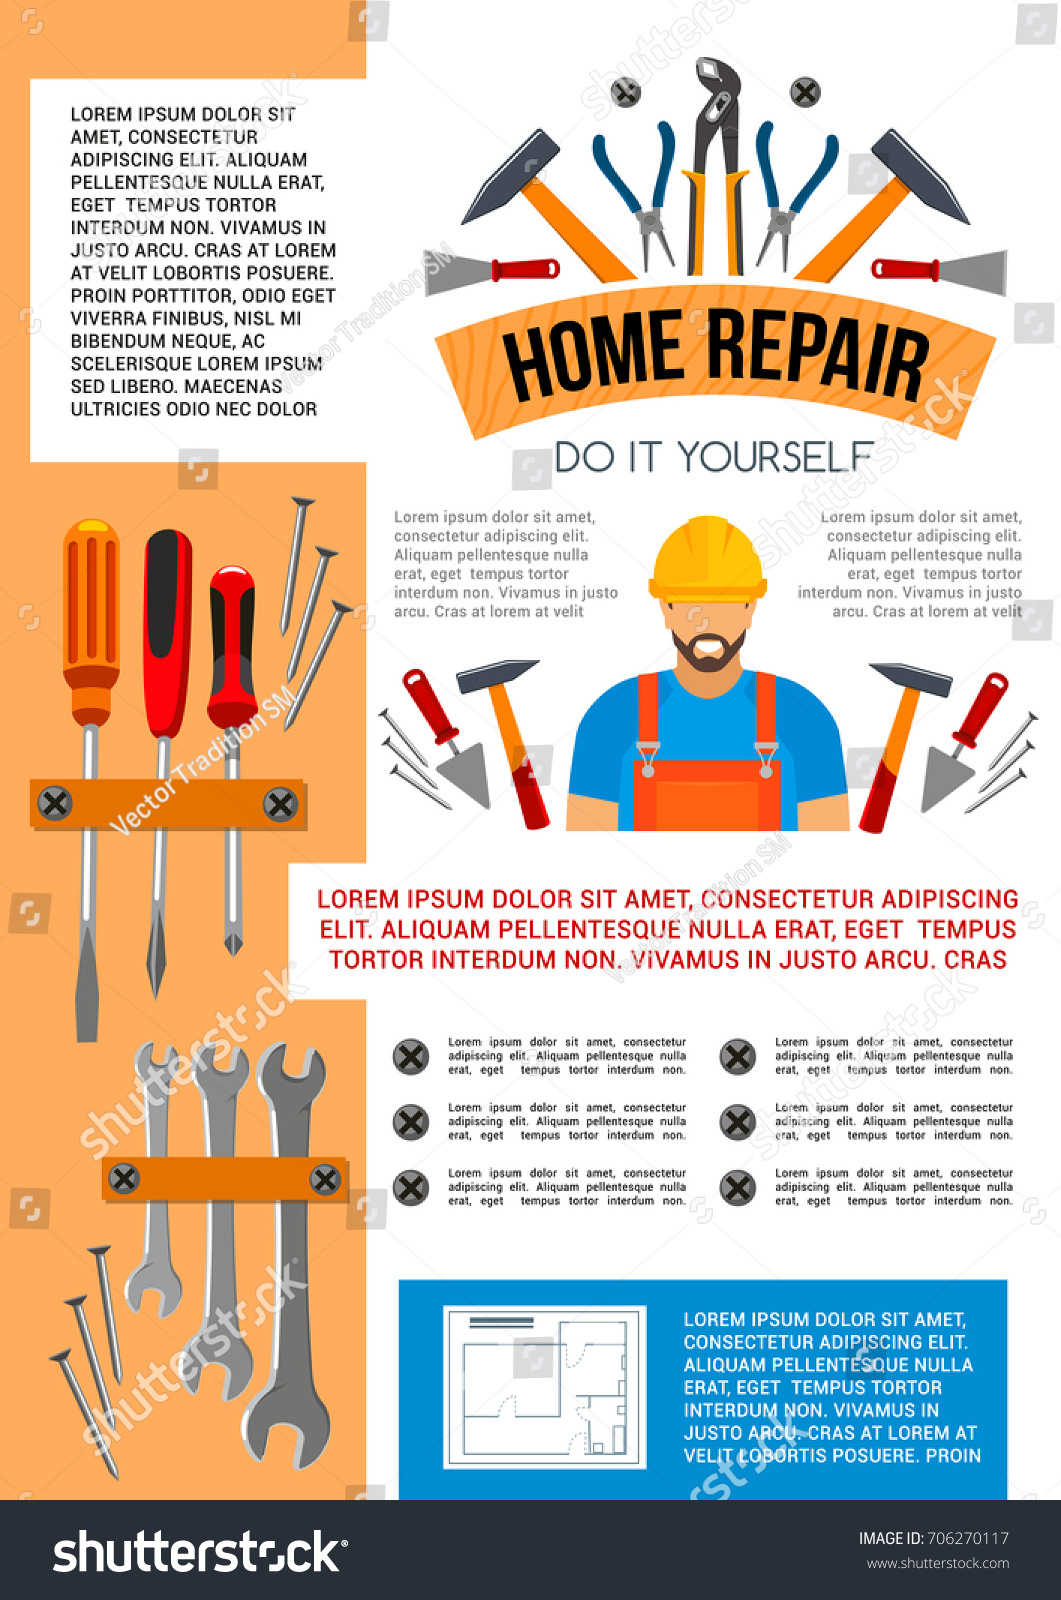 Home repair work tools do yourself stock vector 706270117 home repair work tools and do it yourself toolbox poster for house construction or renovation solutioingenieria